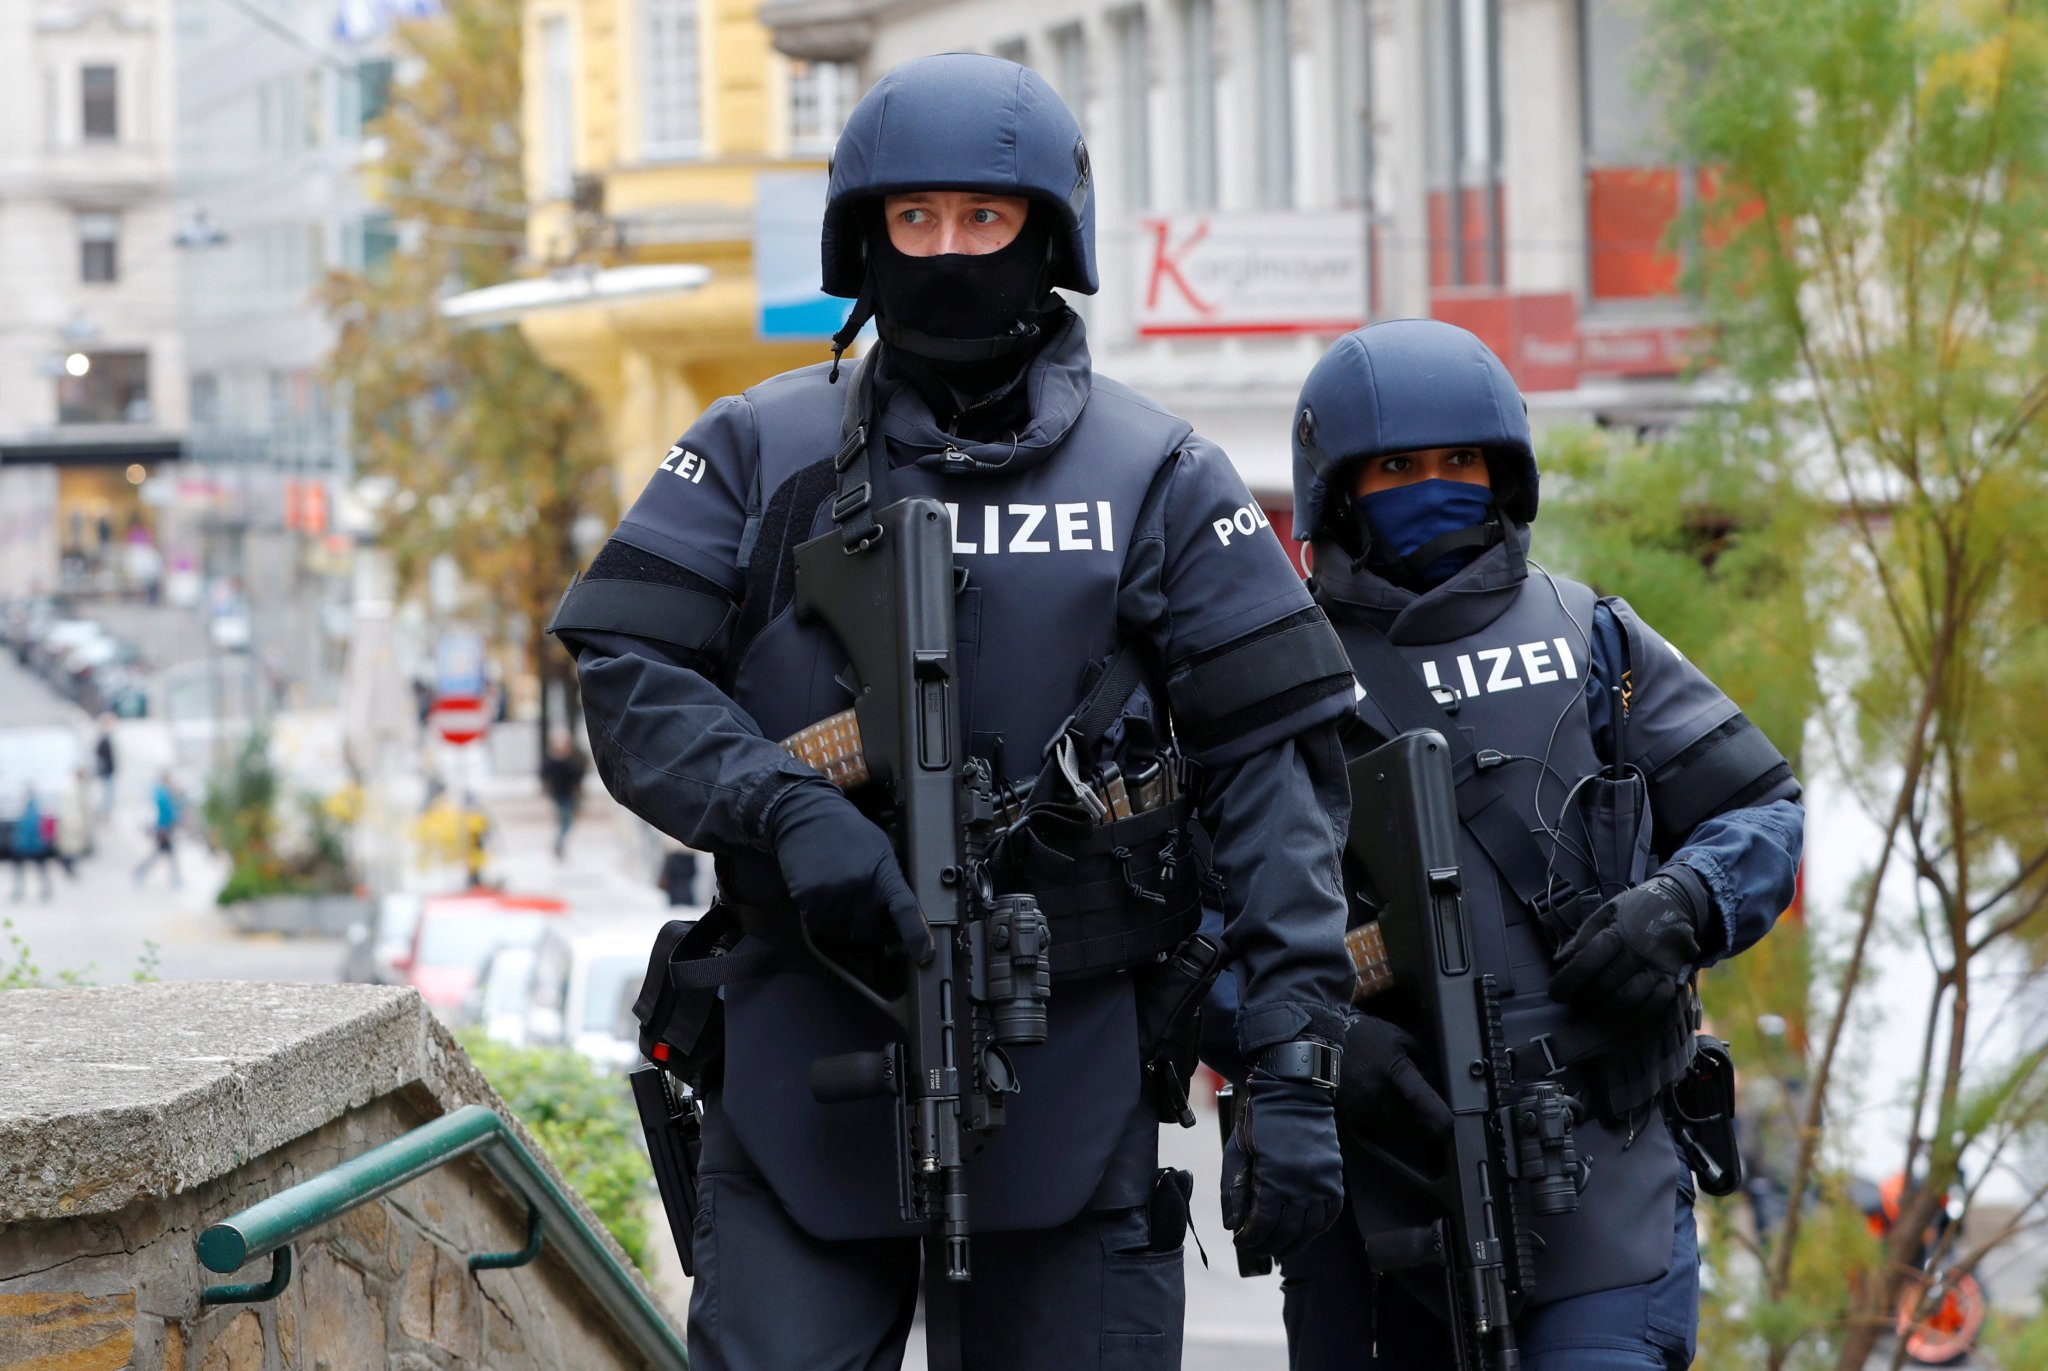 Europe has taken tangible steps toward combating the spread of extremism online